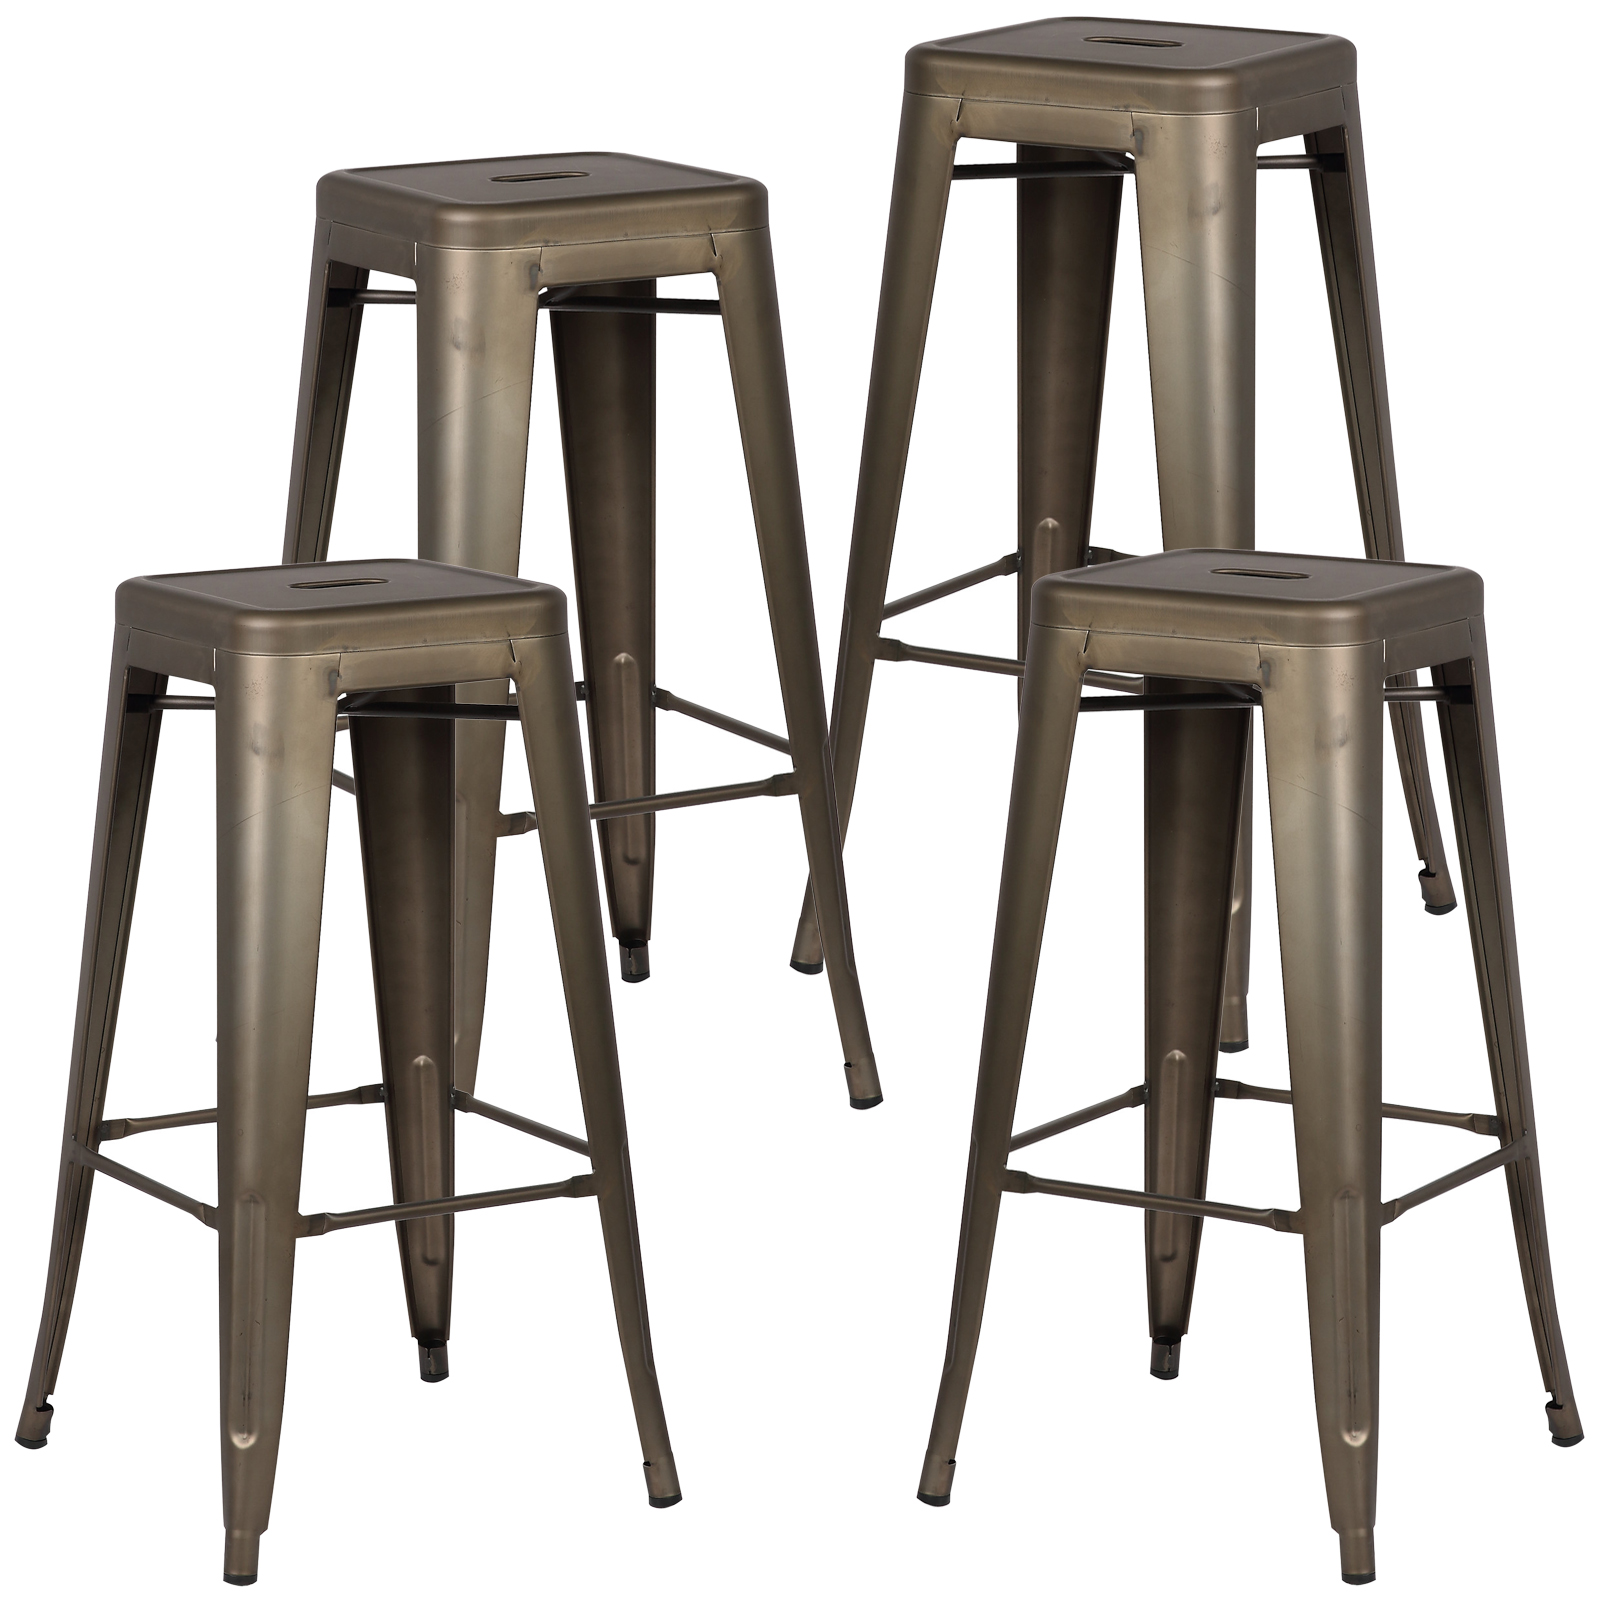 Poly and Bark Trattoria Bar Stool in Bronze (Set of 4) by Supplier Generic